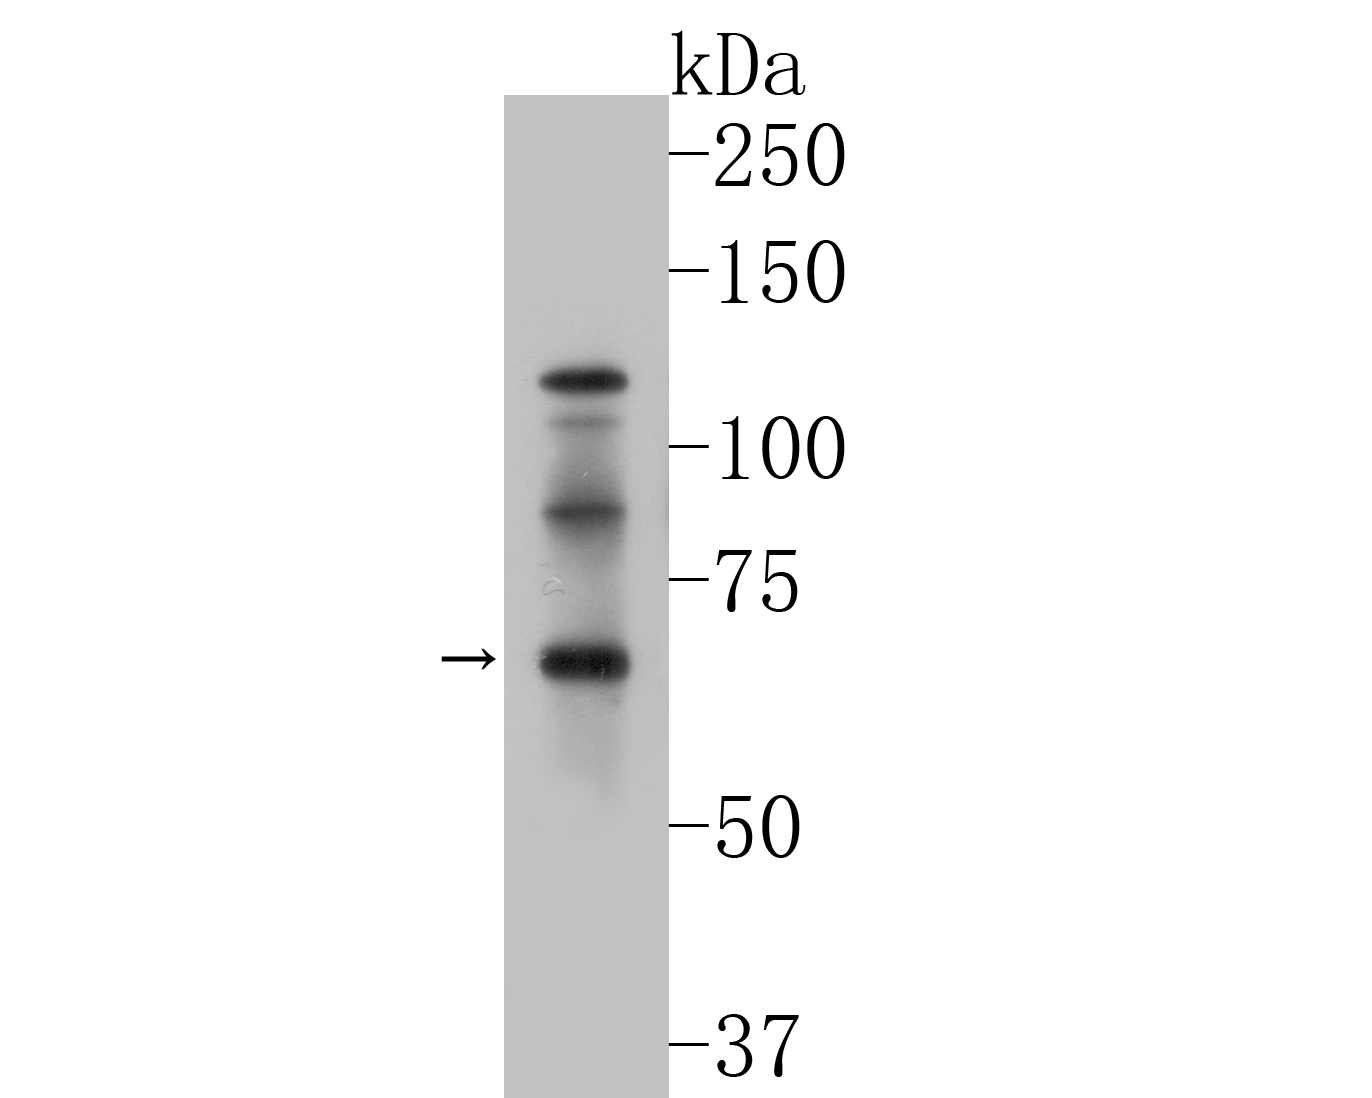 Western blot analysis of GABRA4 on SH-SY5Y cell lysates. Proteins were transferred to a PVDF membrane and blocked with 5% BSA in PBS for 1 hour at room temperature. The primary antibody (ER1901-60, 1/500) was used in 5% BSA at room temperature for 2 hours. Goat Anti-Rabbit IgG - HRP Secondary Antibody (HA1001) at 1:5,000 dilution was used for 1 hour at room temperature.